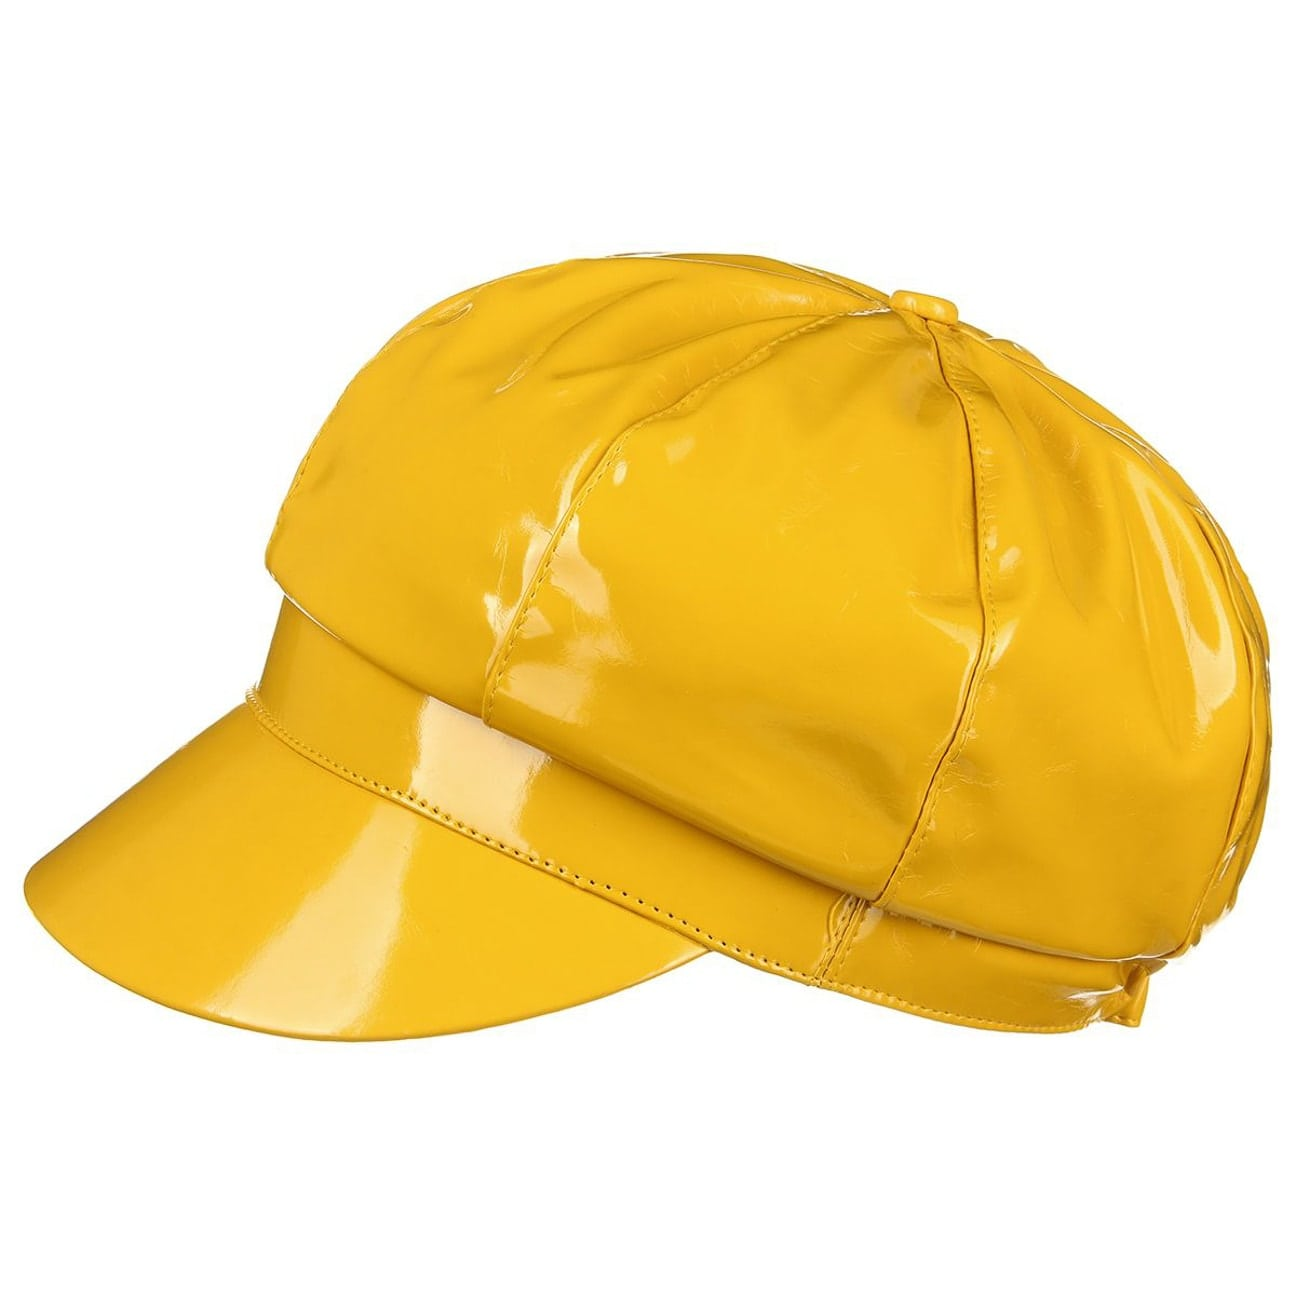 ... Patent Waterproof Hat by McBURN - yellow 1 ... 06333c9cb5ad